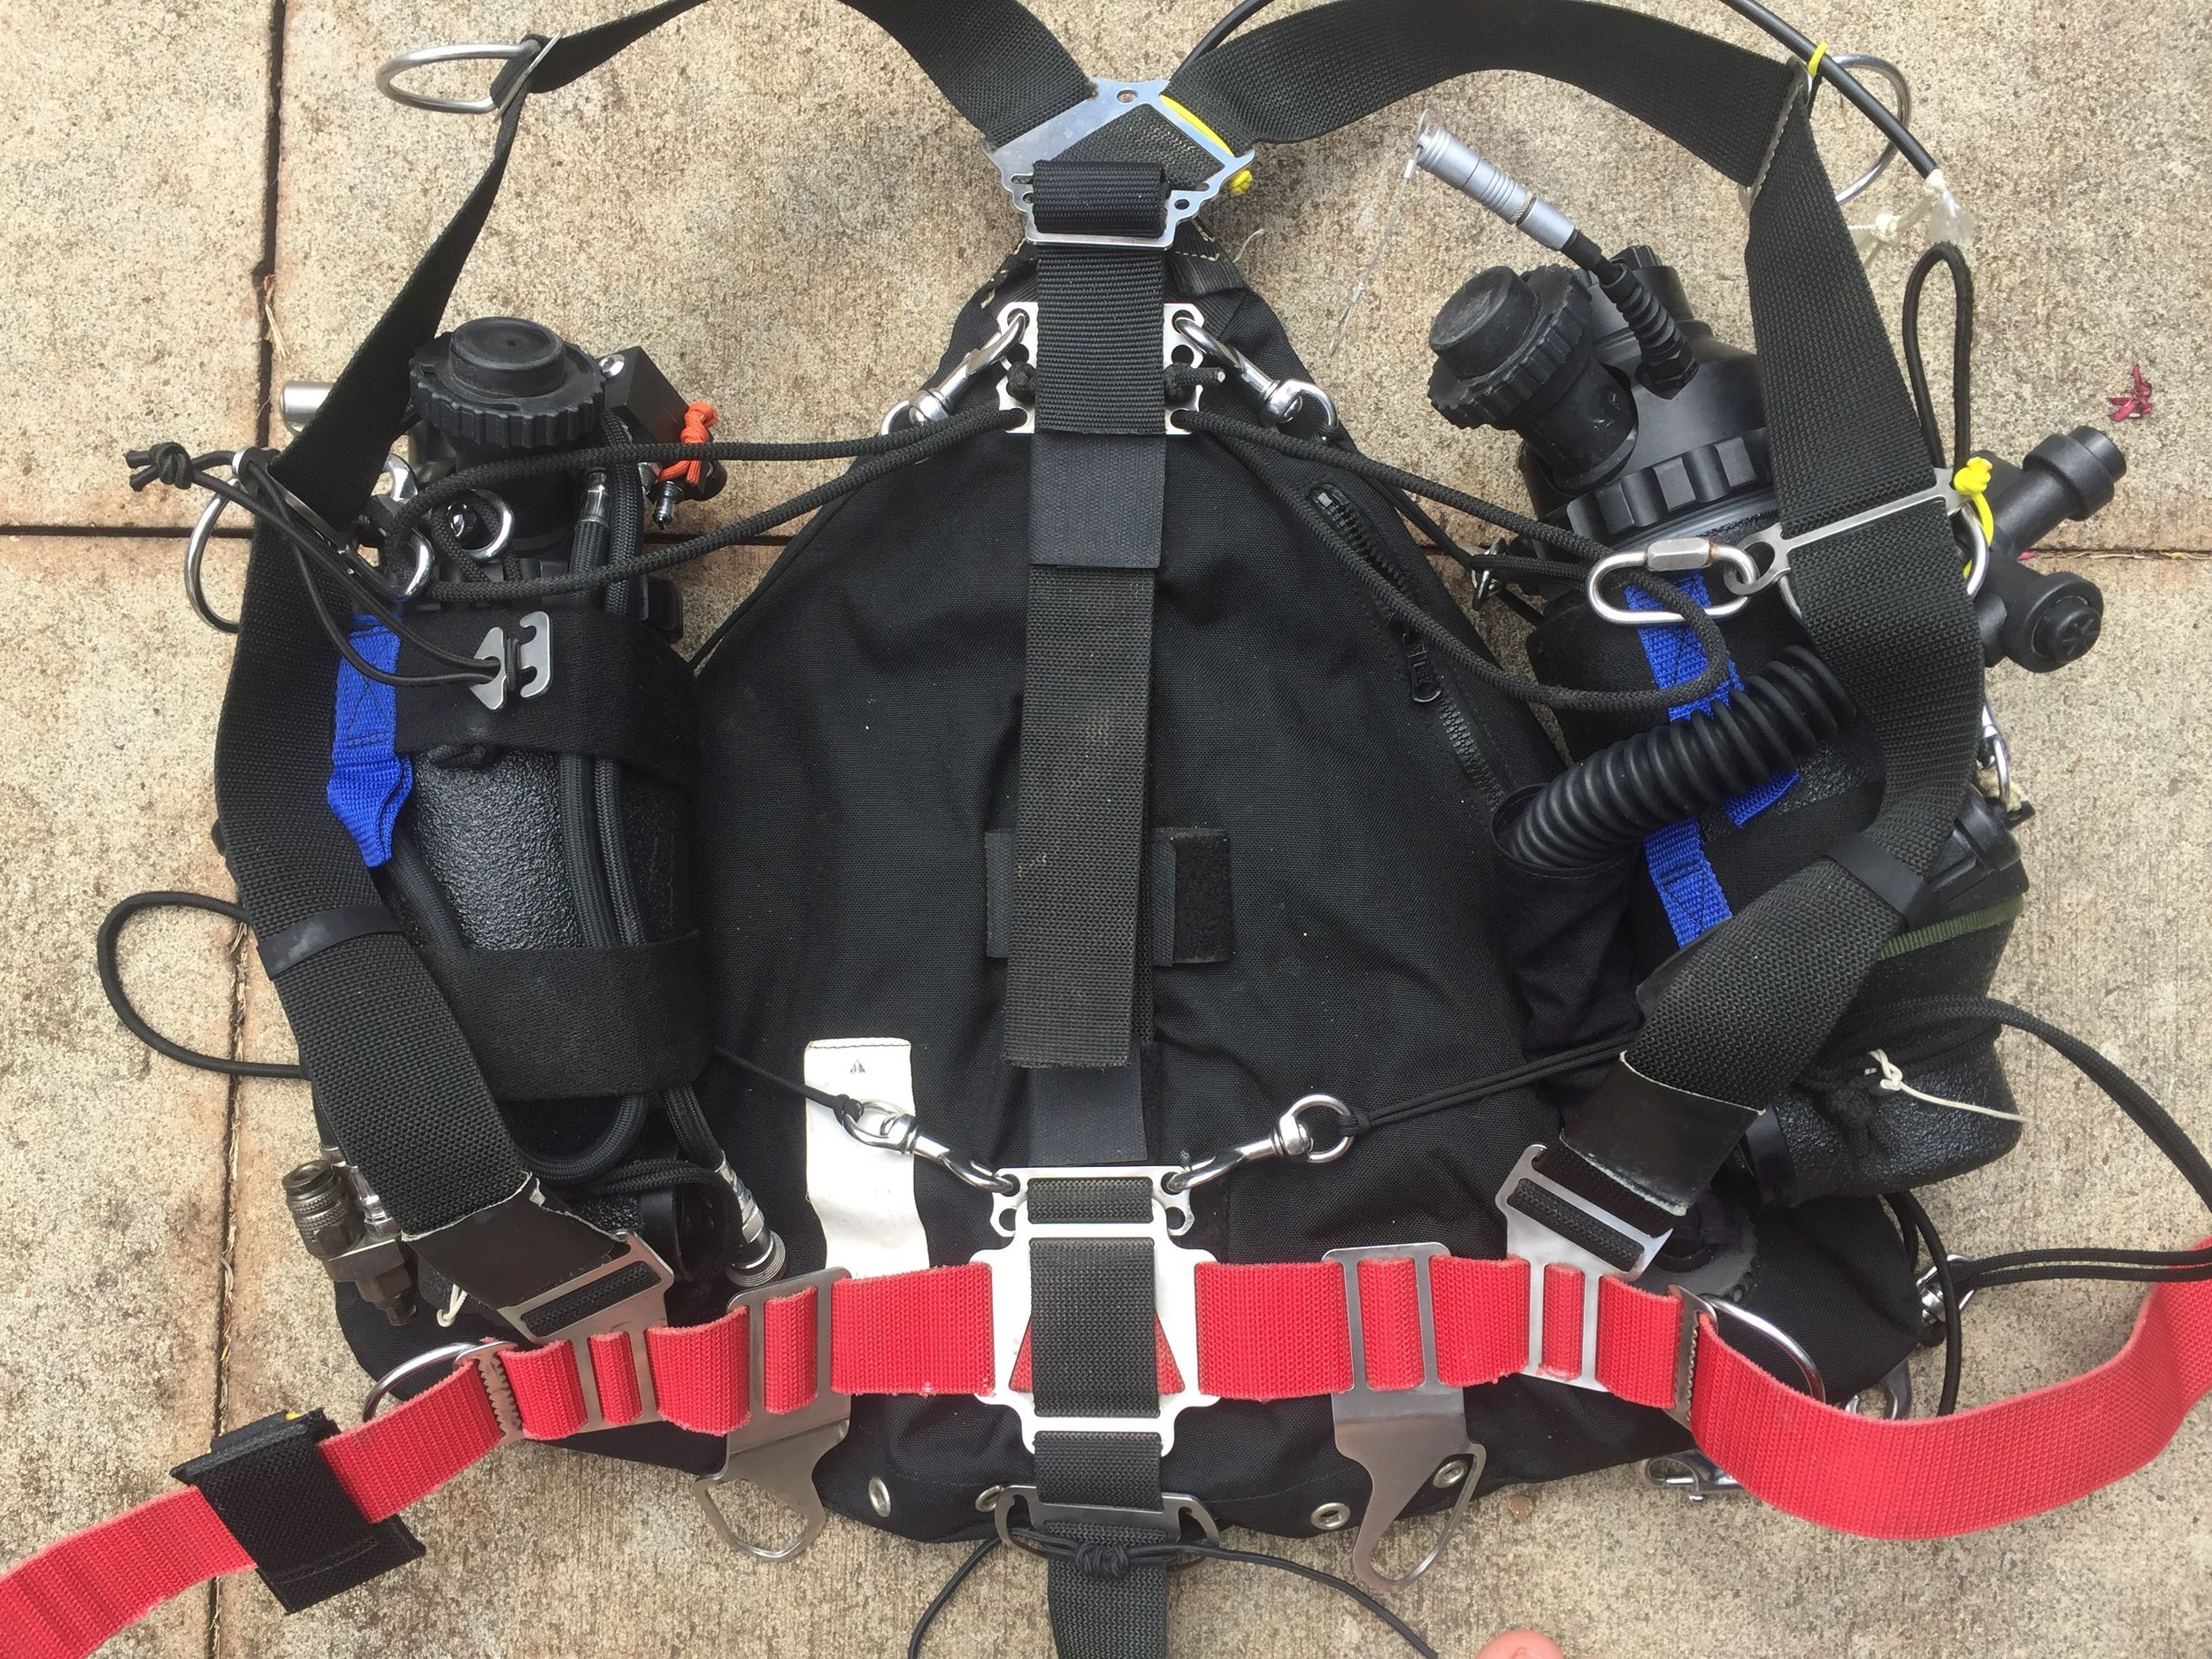 Harness with cans, no counterlung to show connection points.